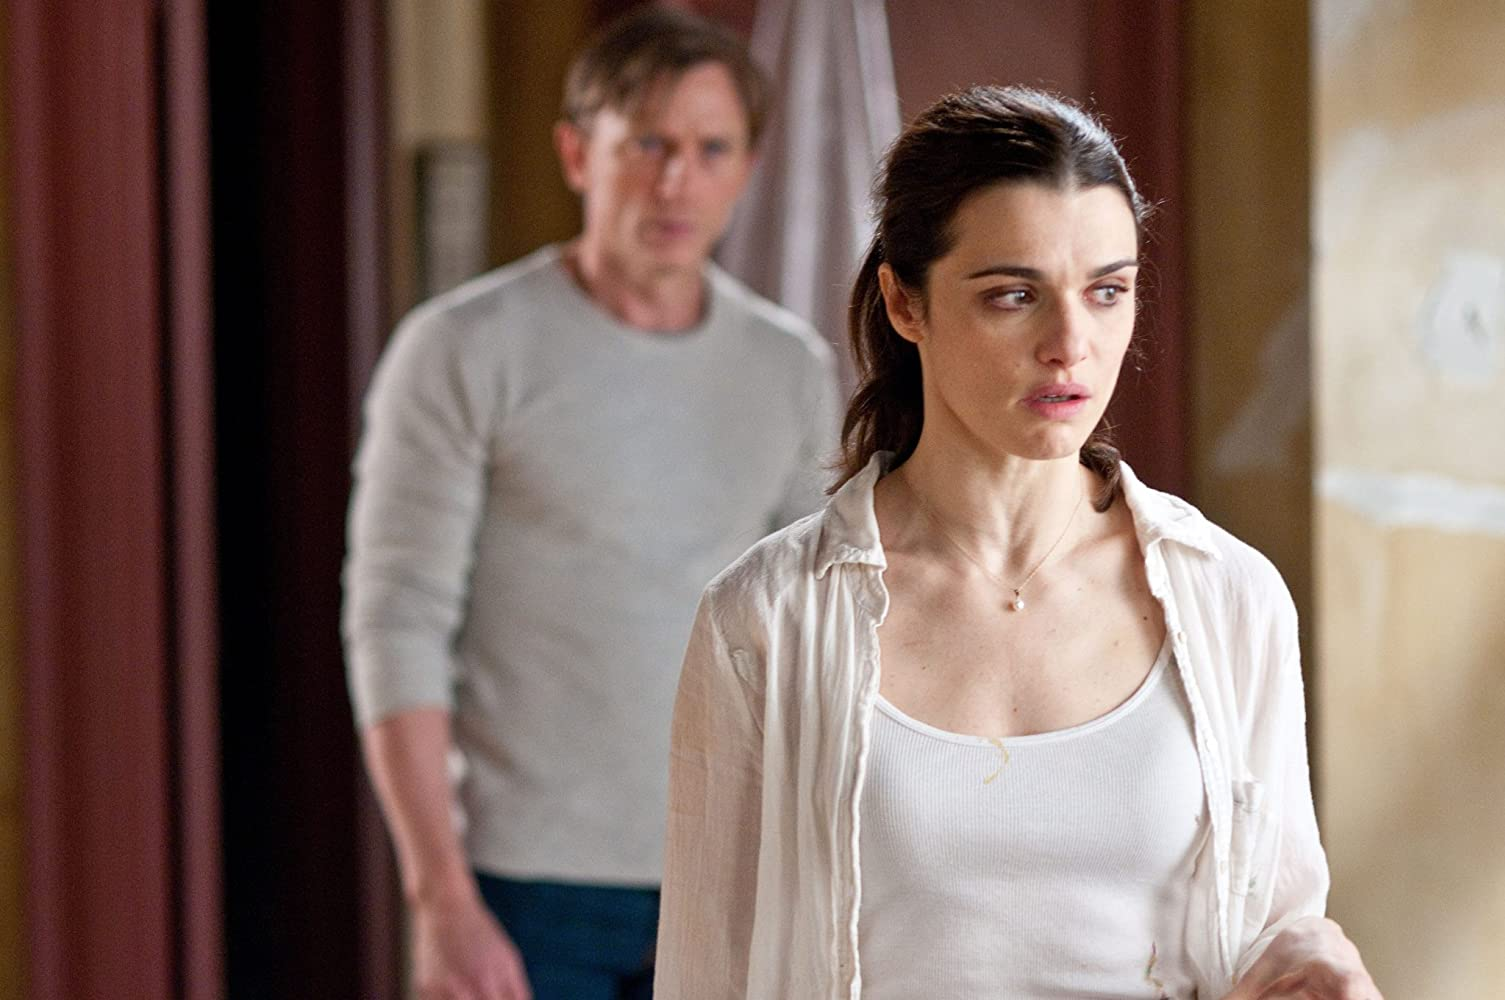 Rachel Weisz and Daniel Craig in Dream House (2011)